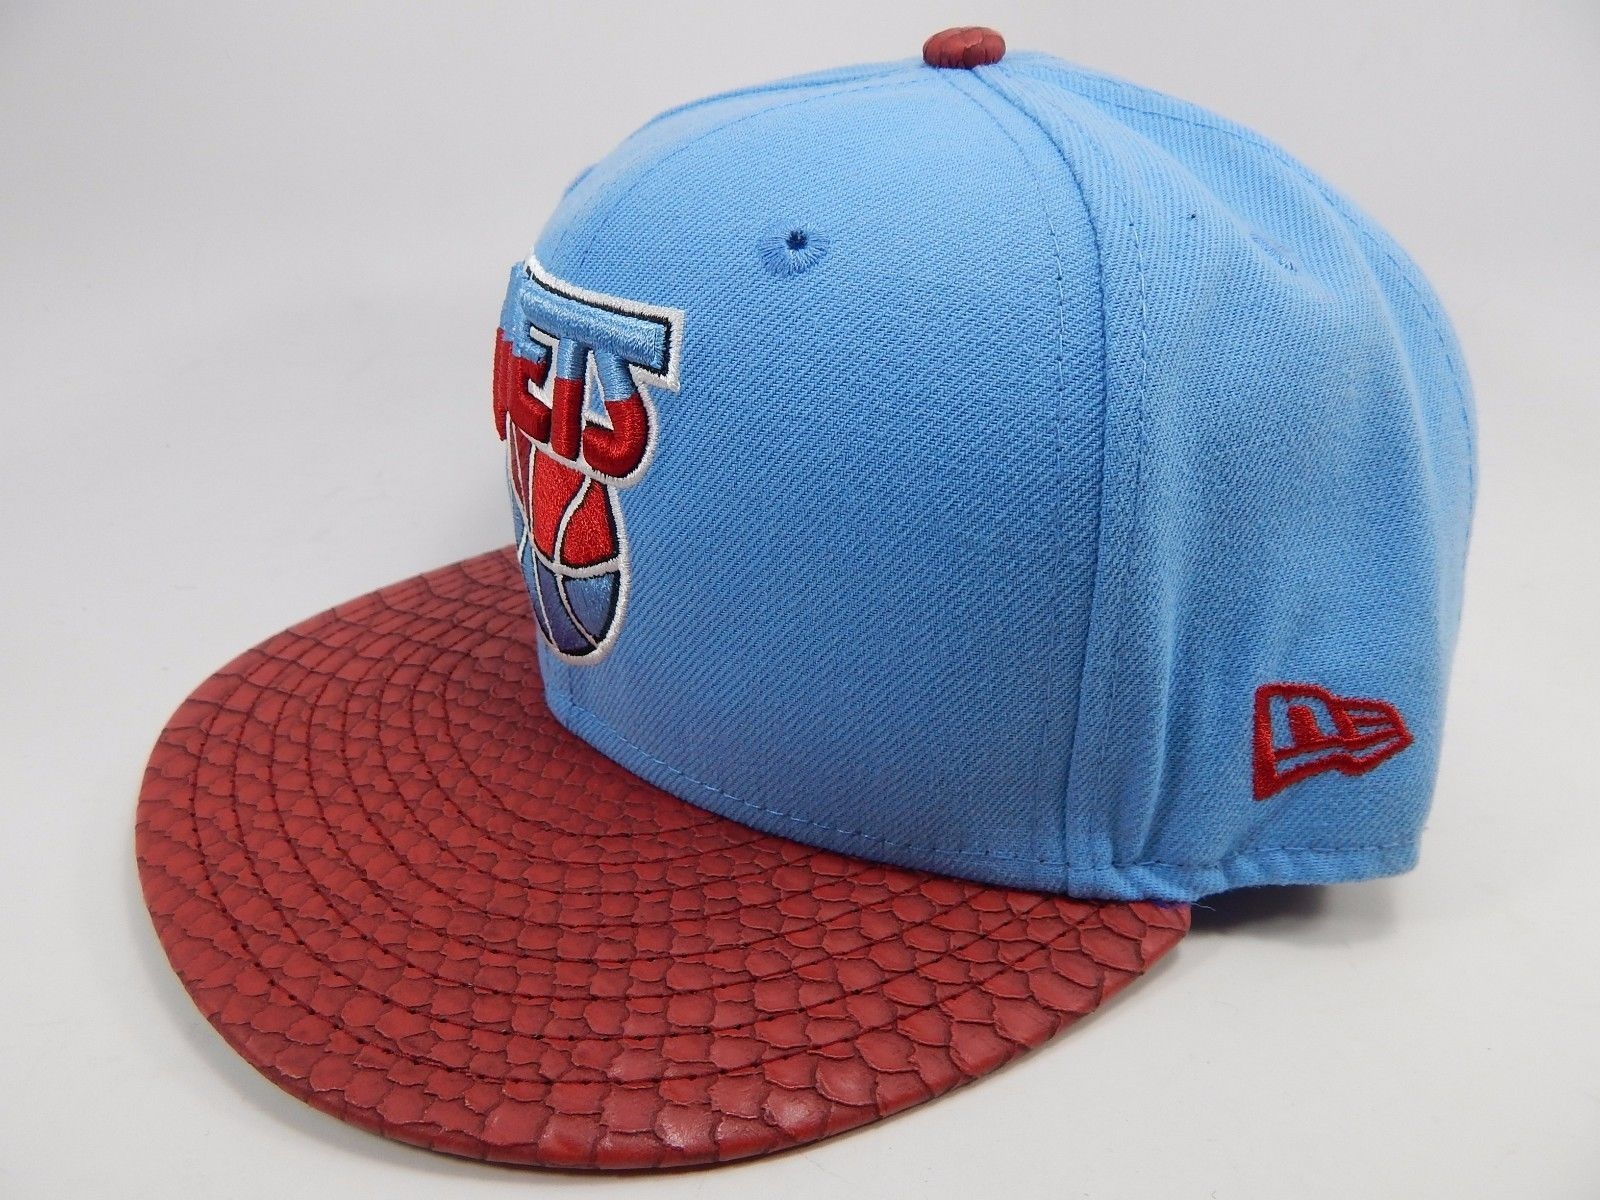 New Jersey Nets New Era Size 7 1/2 Fitted 59Fifty Official NBA Cap Hat Blue Red